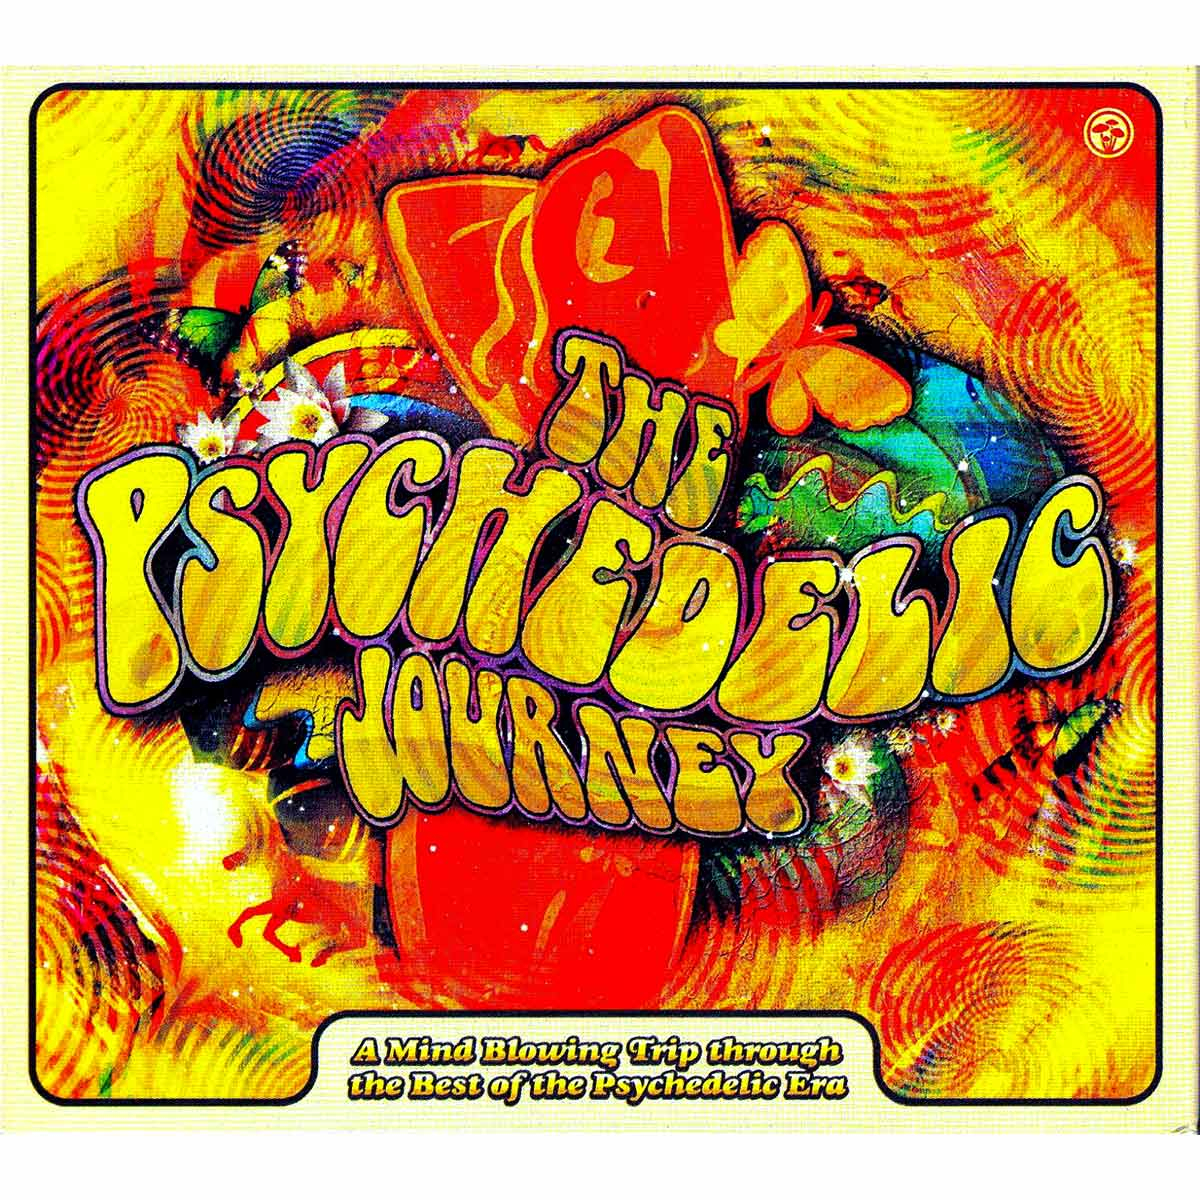 CD Box The Psychedelic Journey